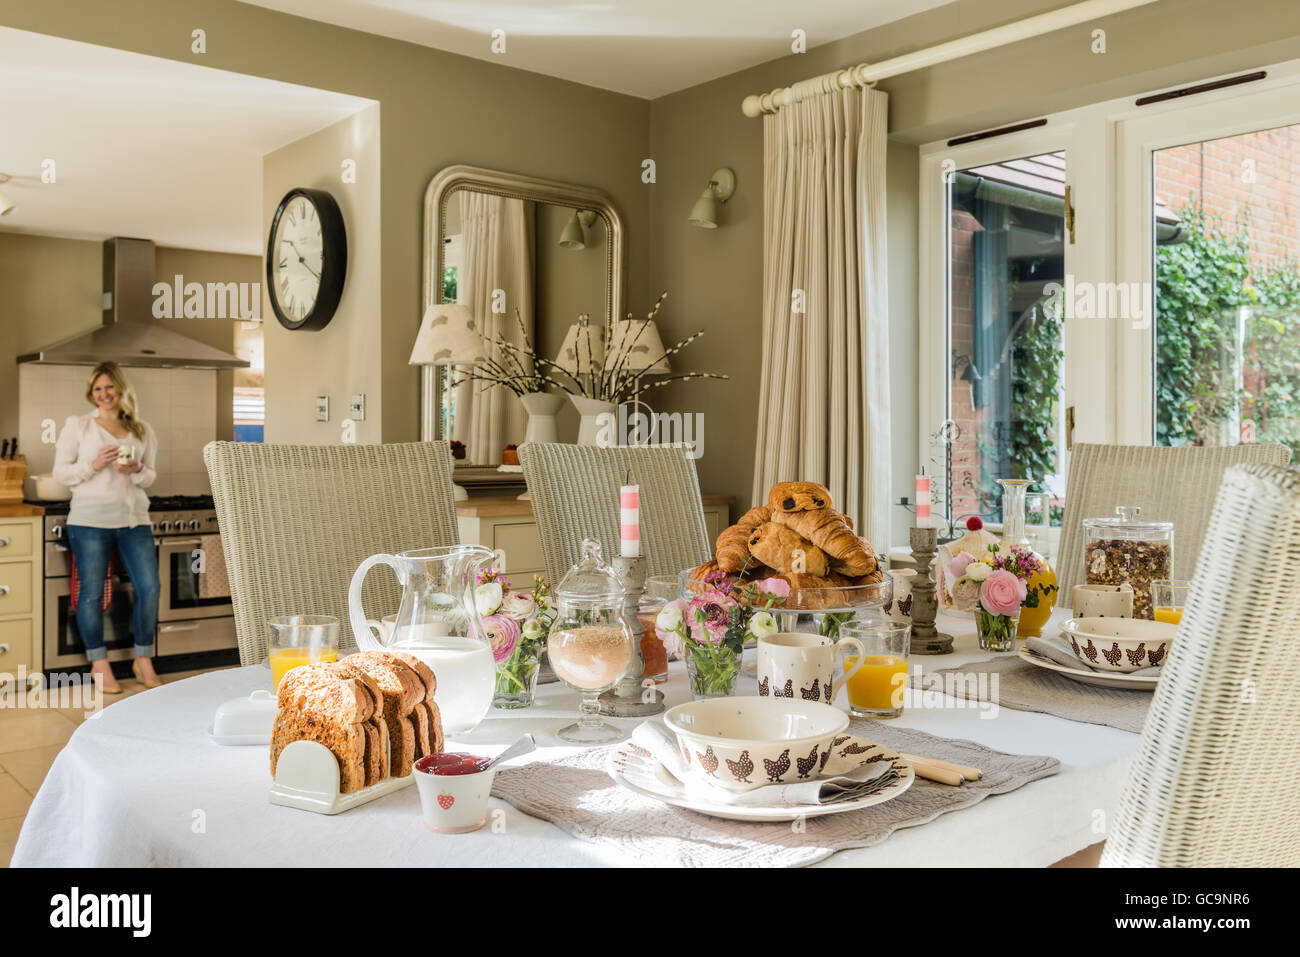 Table laid with breakfast croissant and toast. The dining chairs are Fulham Lloyd and Loom. - Stock Image